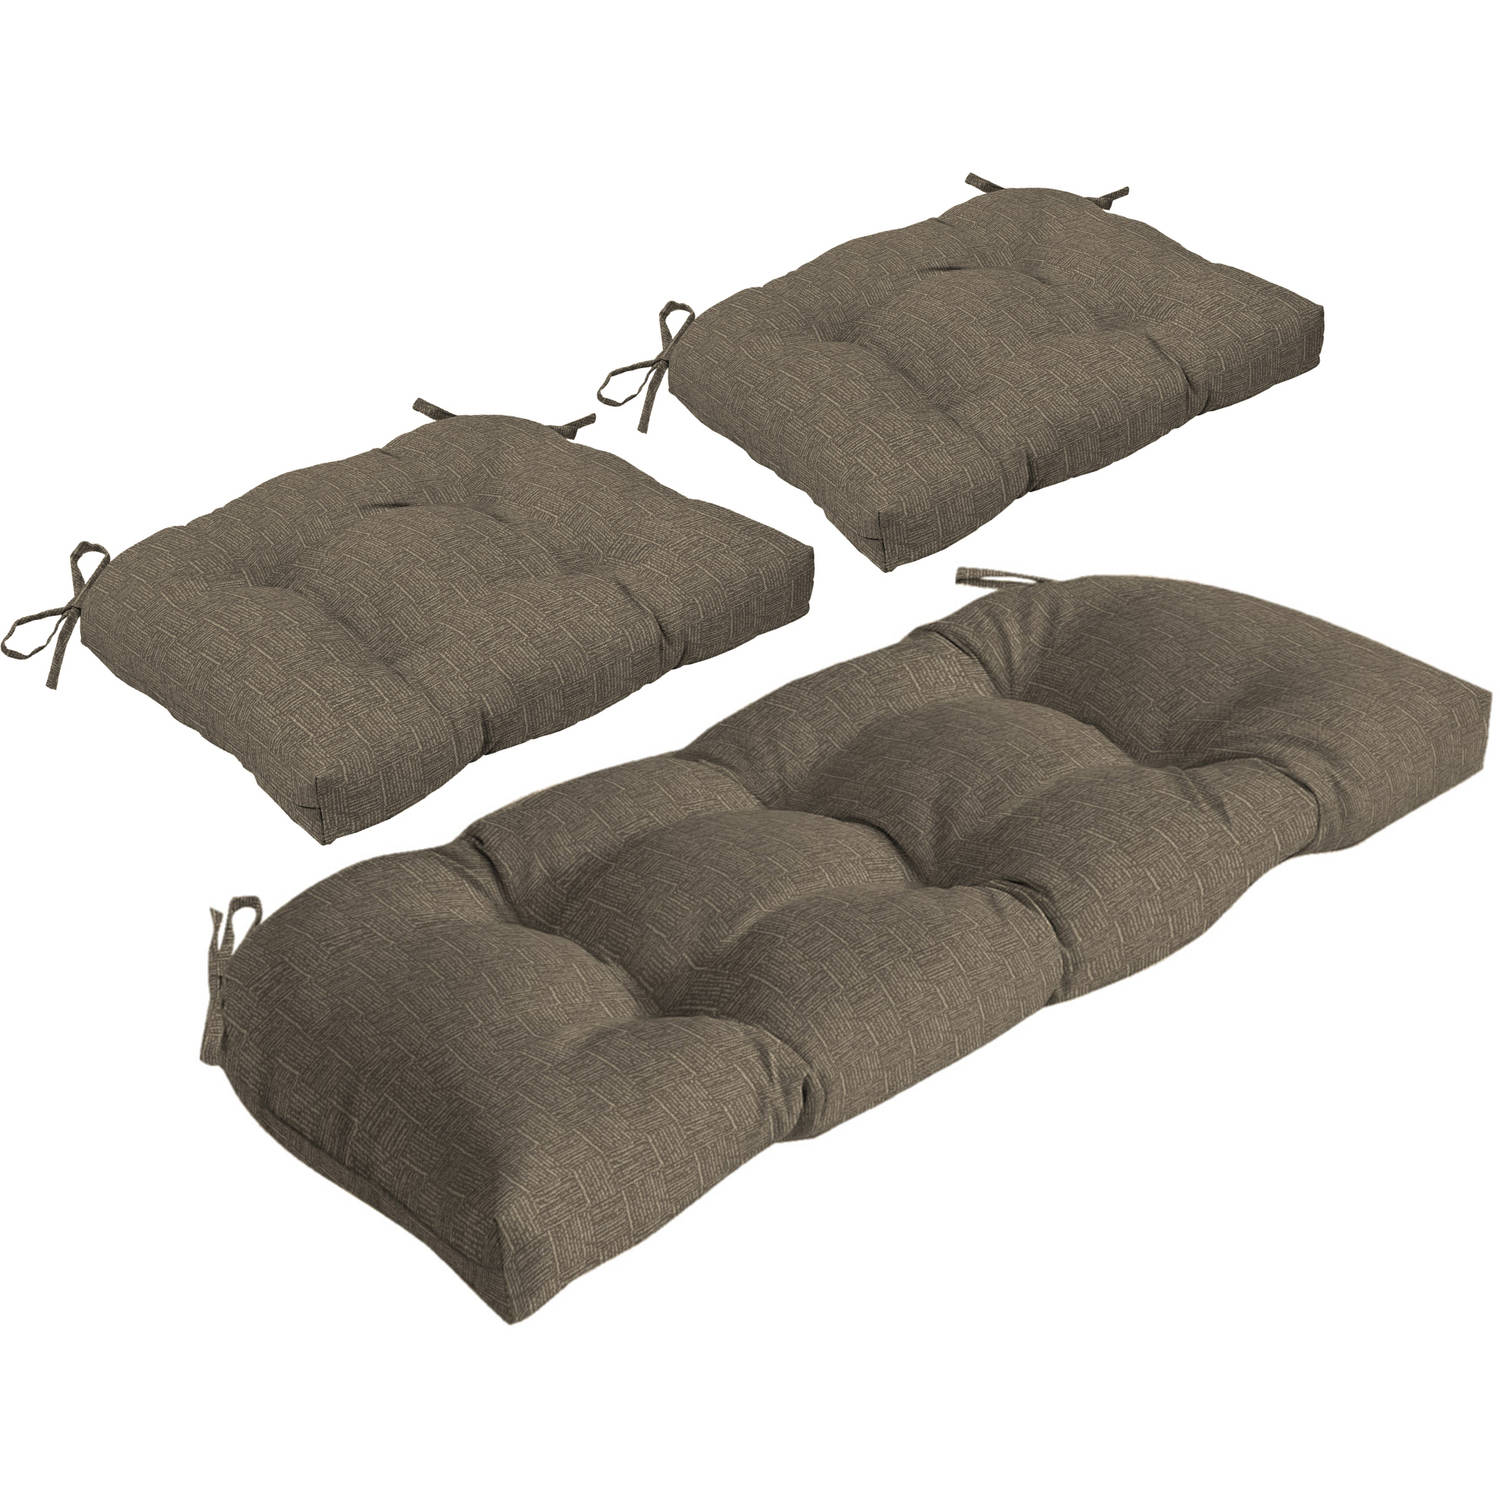 Arden Outdoors Wicker Cushion Set for Settee and 2 Chairs